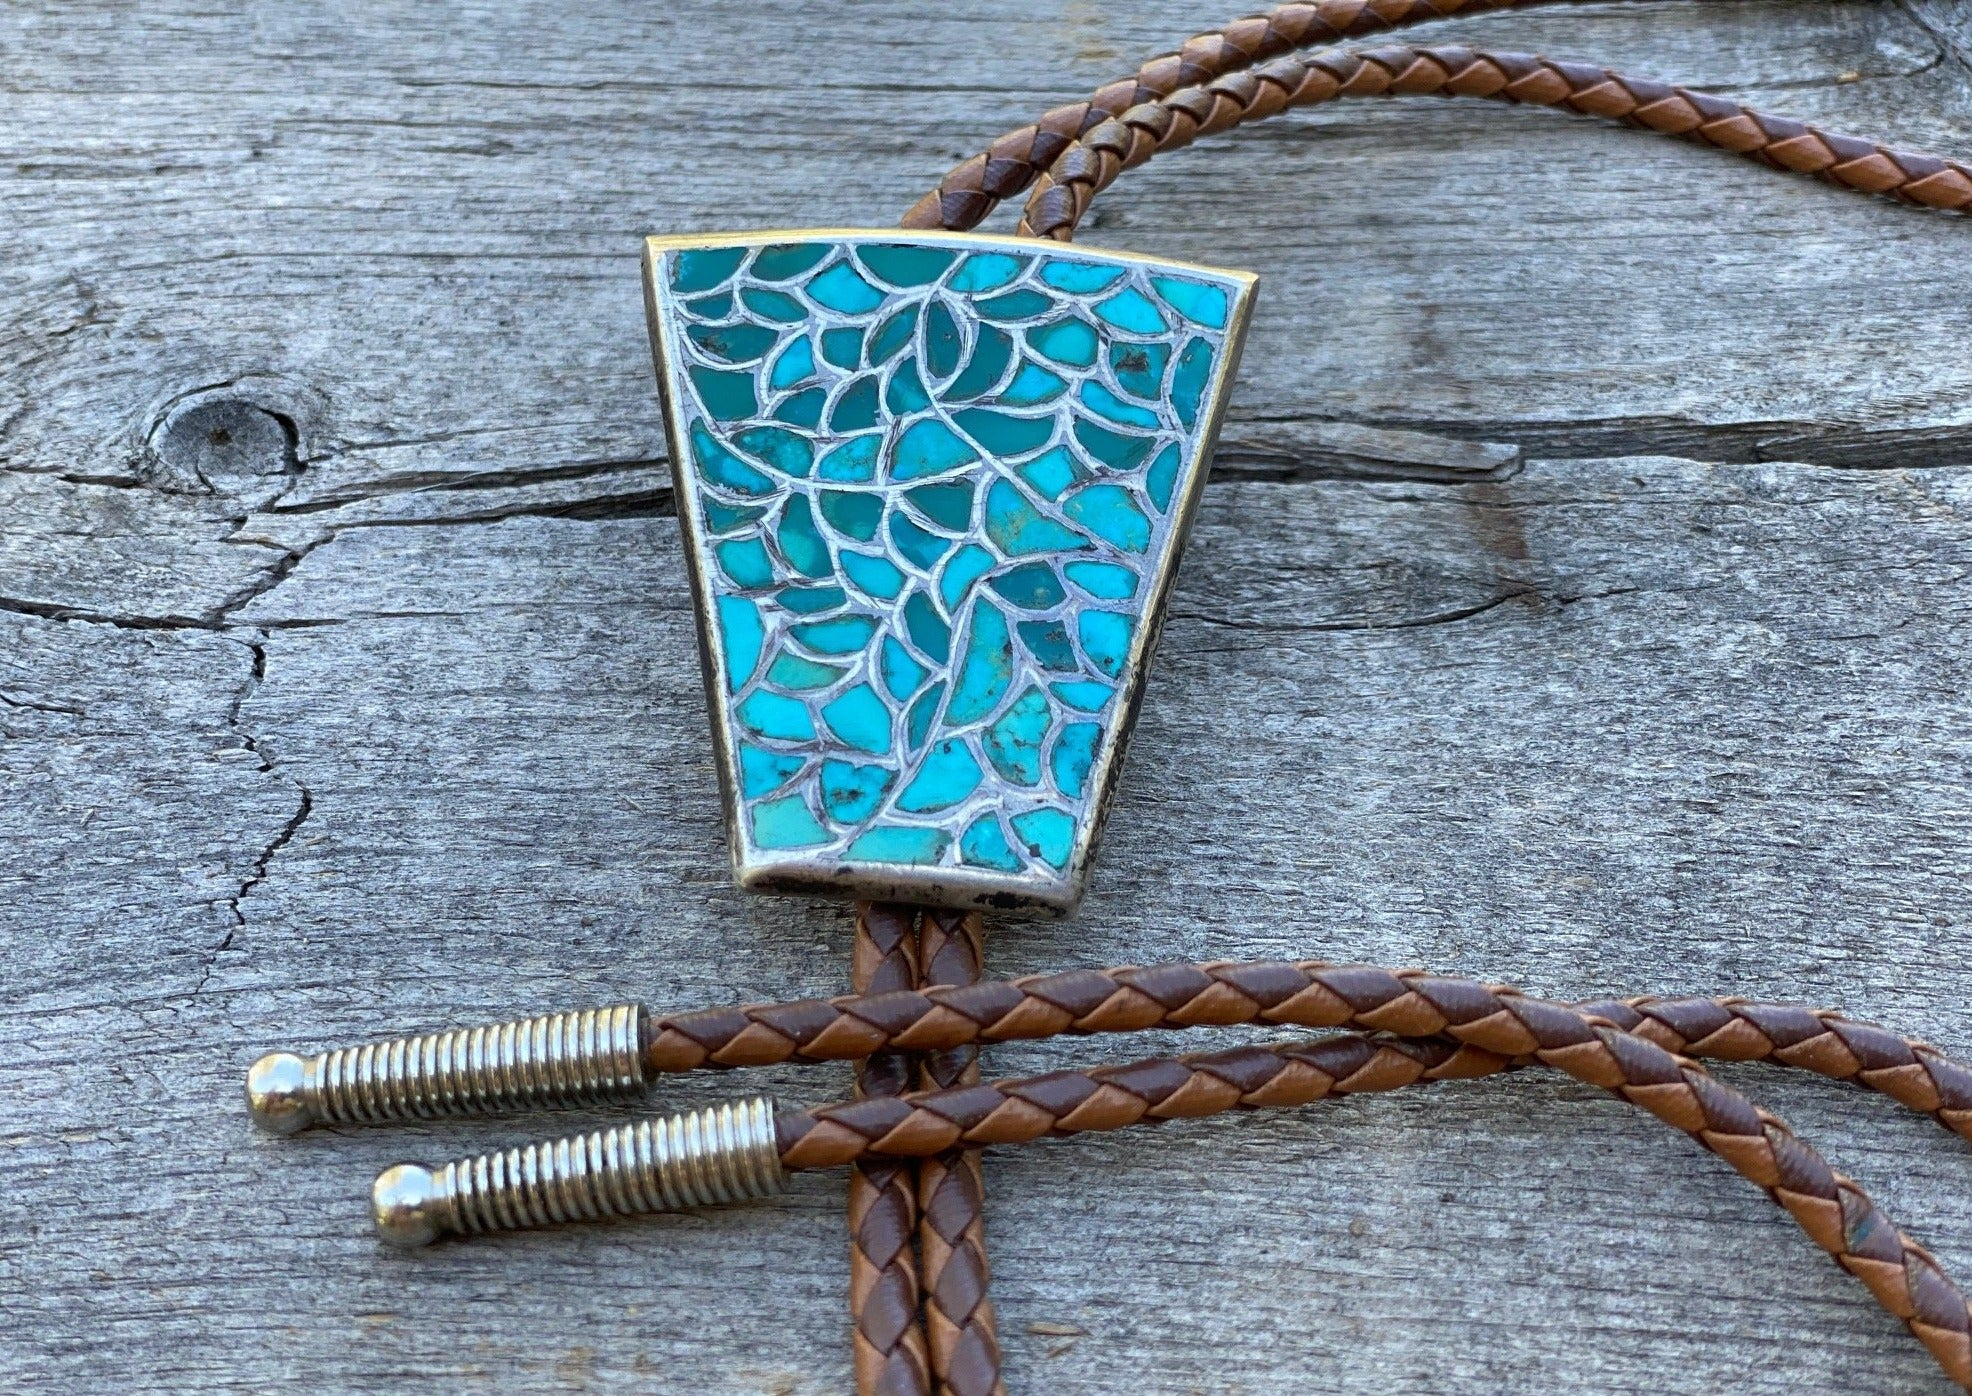 Silver and turquoise bolo tie on brown braided leather with silver tips